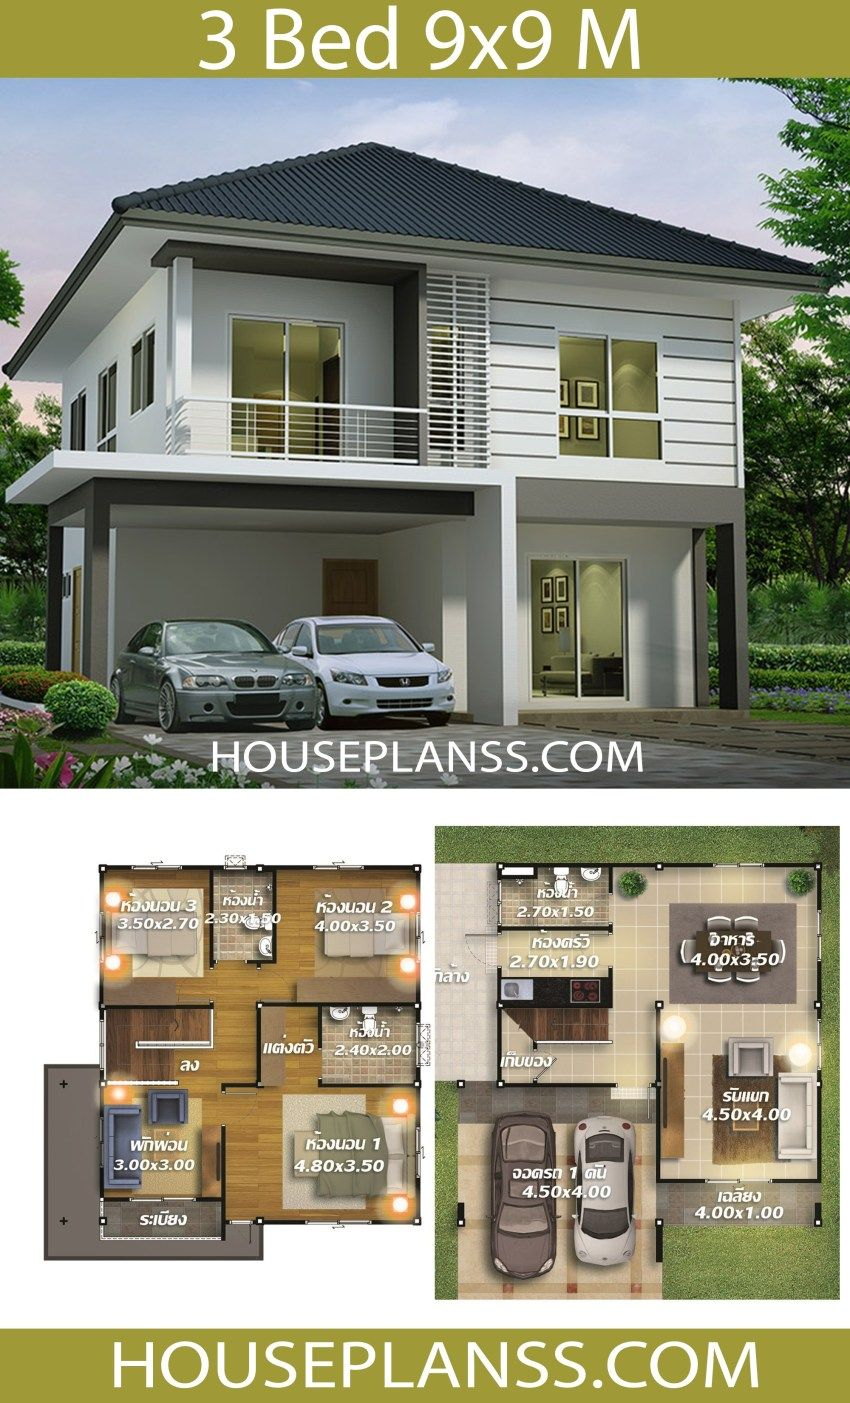 House Plans Ides 9x9 With 3 Bedrooms House Plans Sam Sims House Plans Model House Plan House Plan Gallery